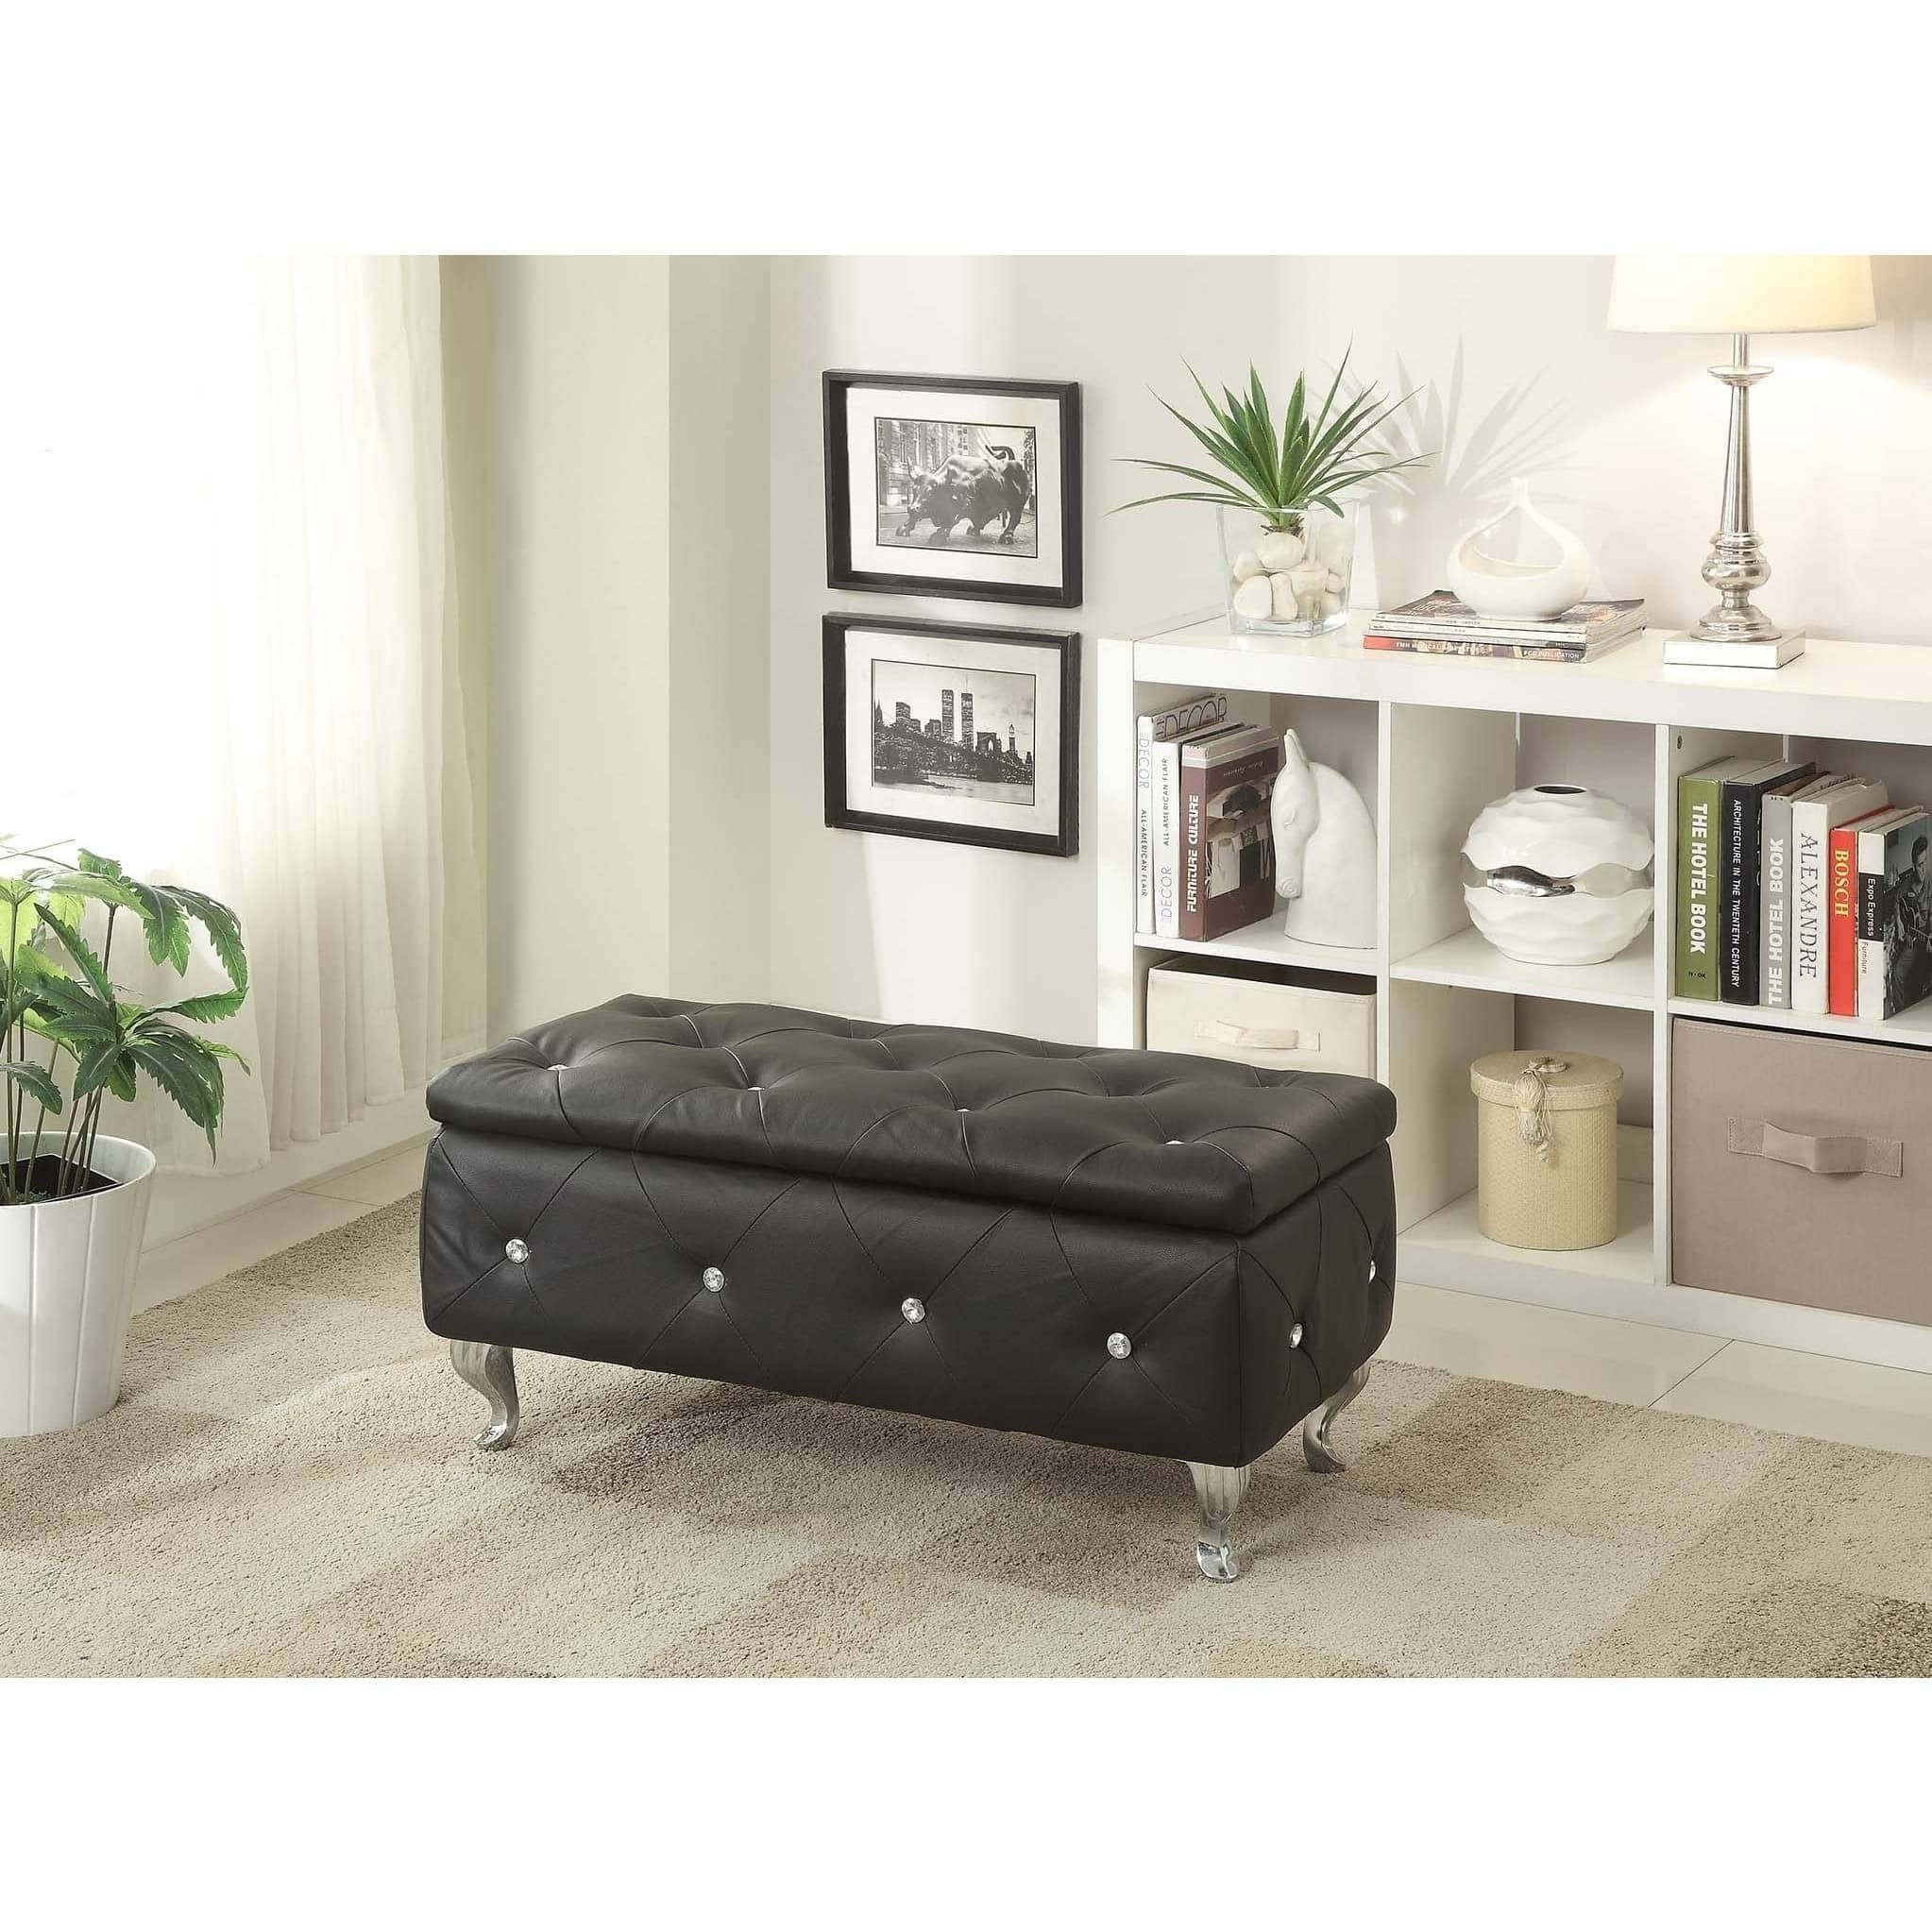 AC Pacific Leather or Fabric Upholstered Tufted Storage Bench